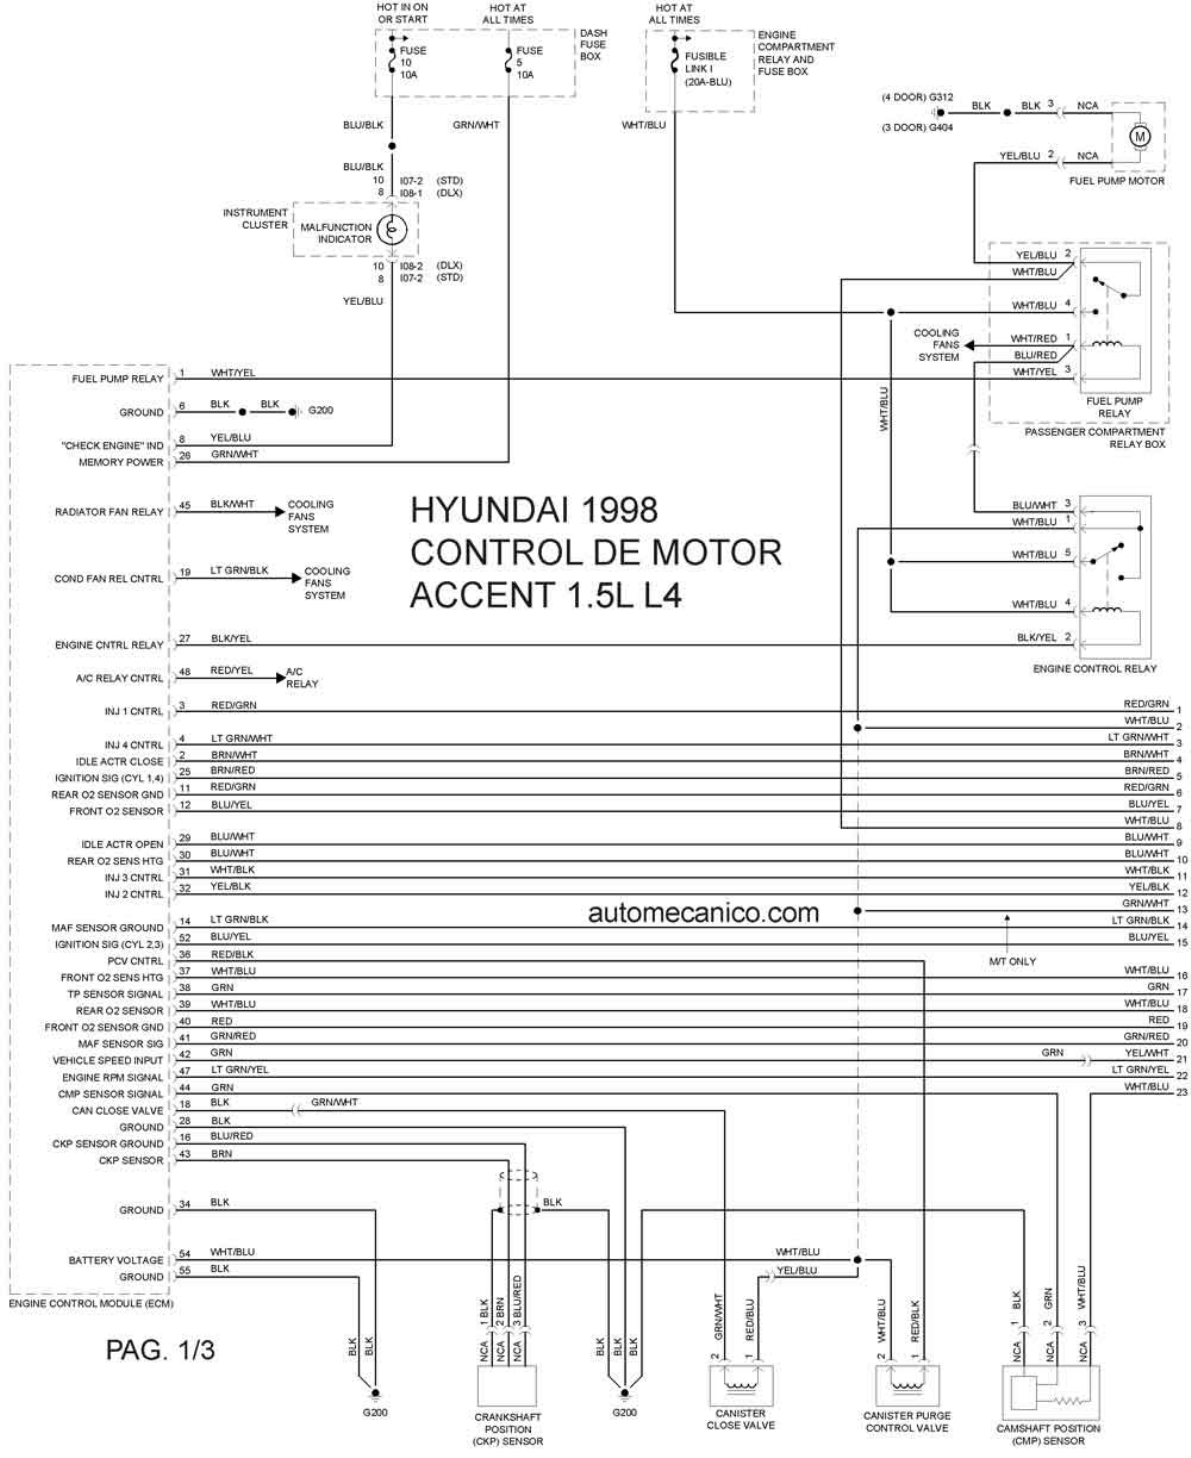 wiring diagram for hyundai accent 2000 - wiring diagram schematic  gear-guest - gear-guest.aliceviola.it  aliceviola.it